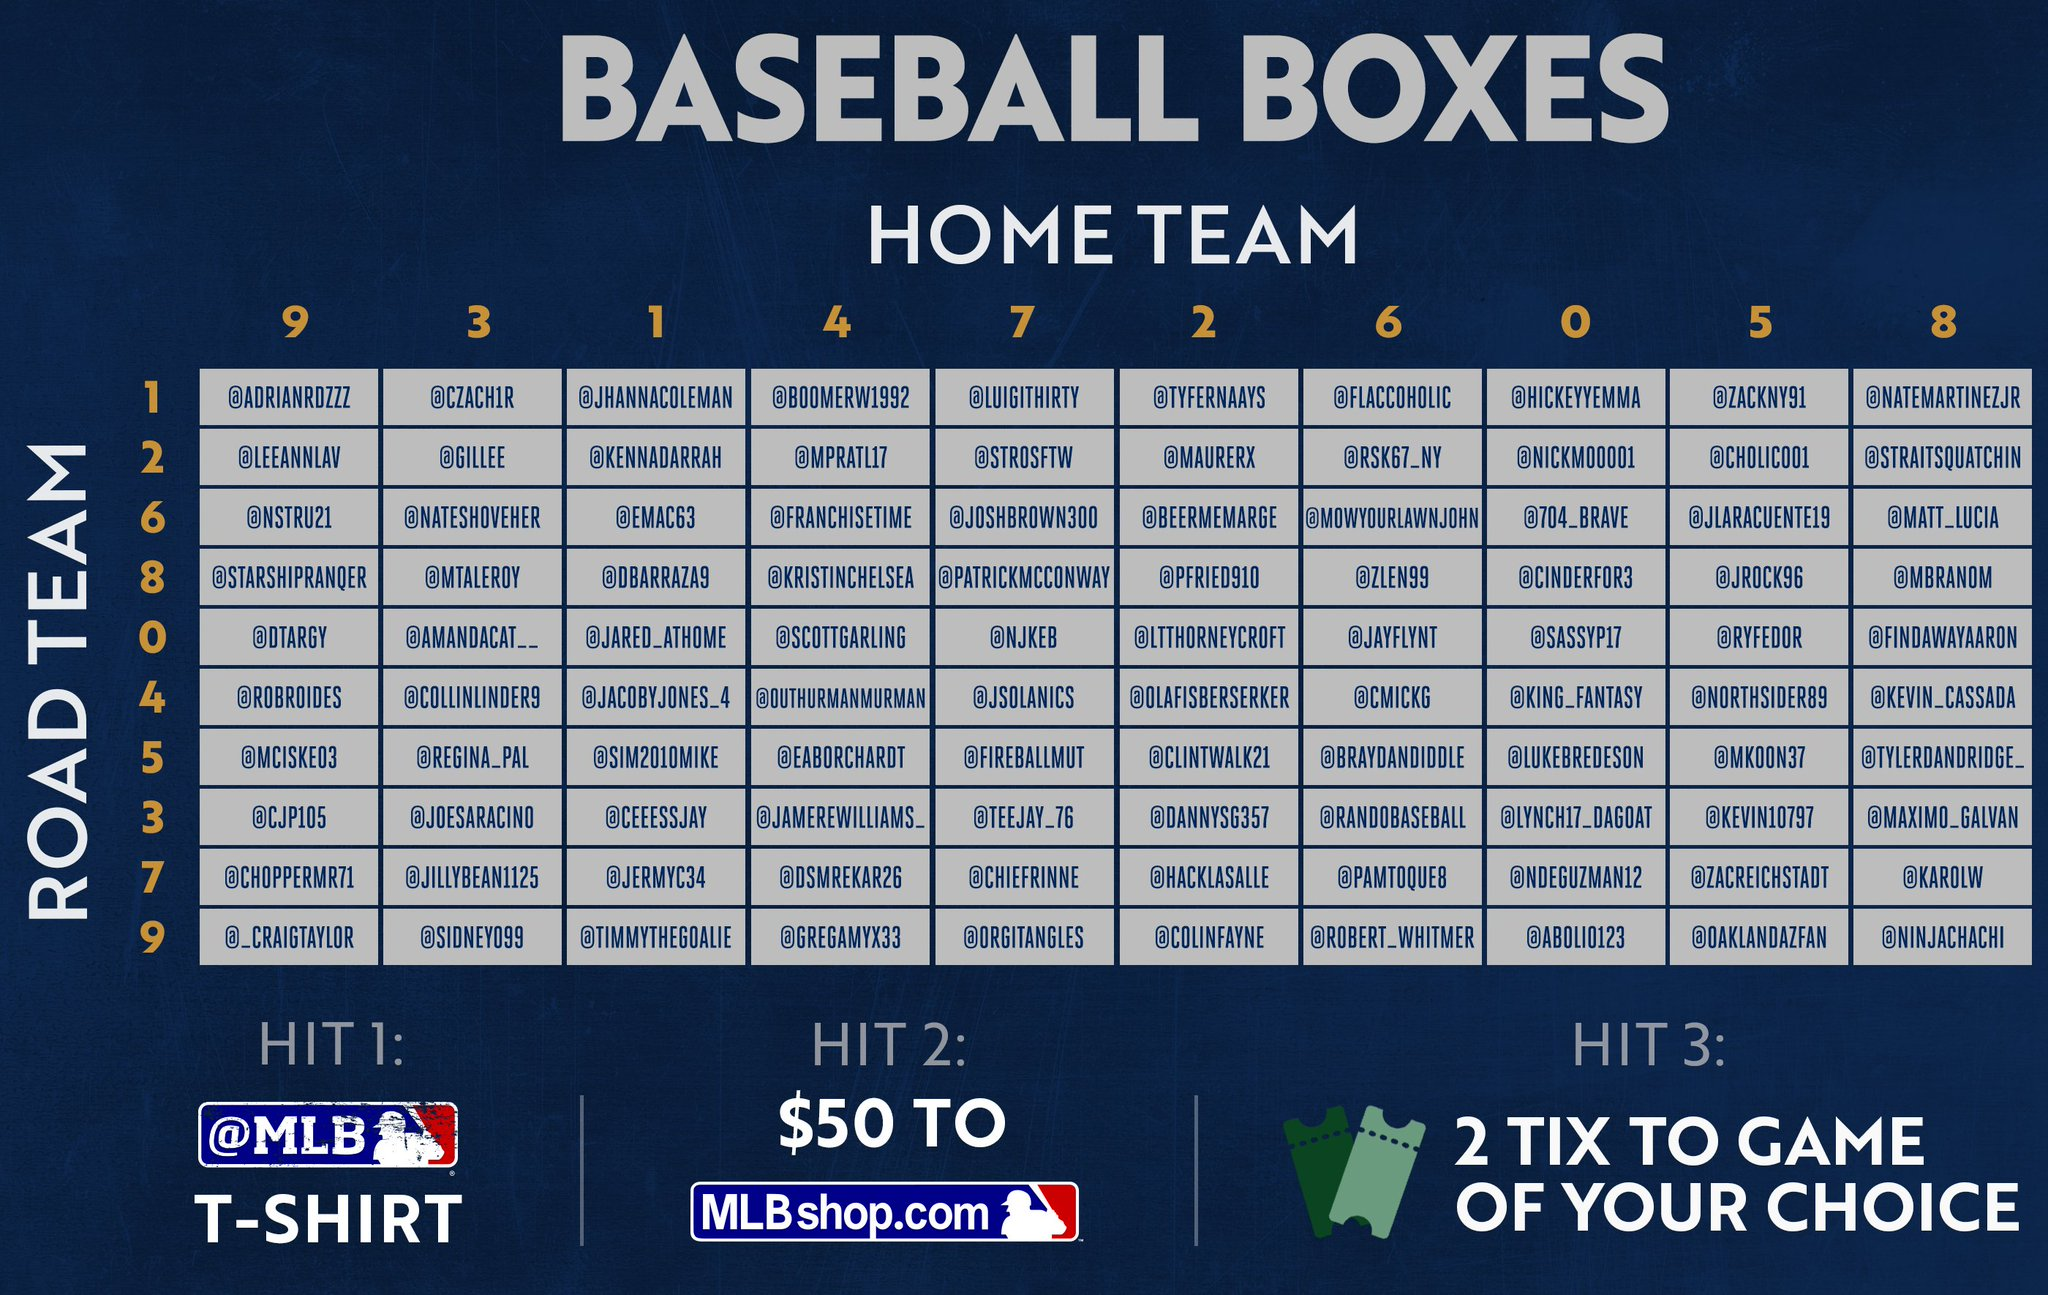 It's that time! #BaseballBoxes https://t.co/TQWoY3RKsV